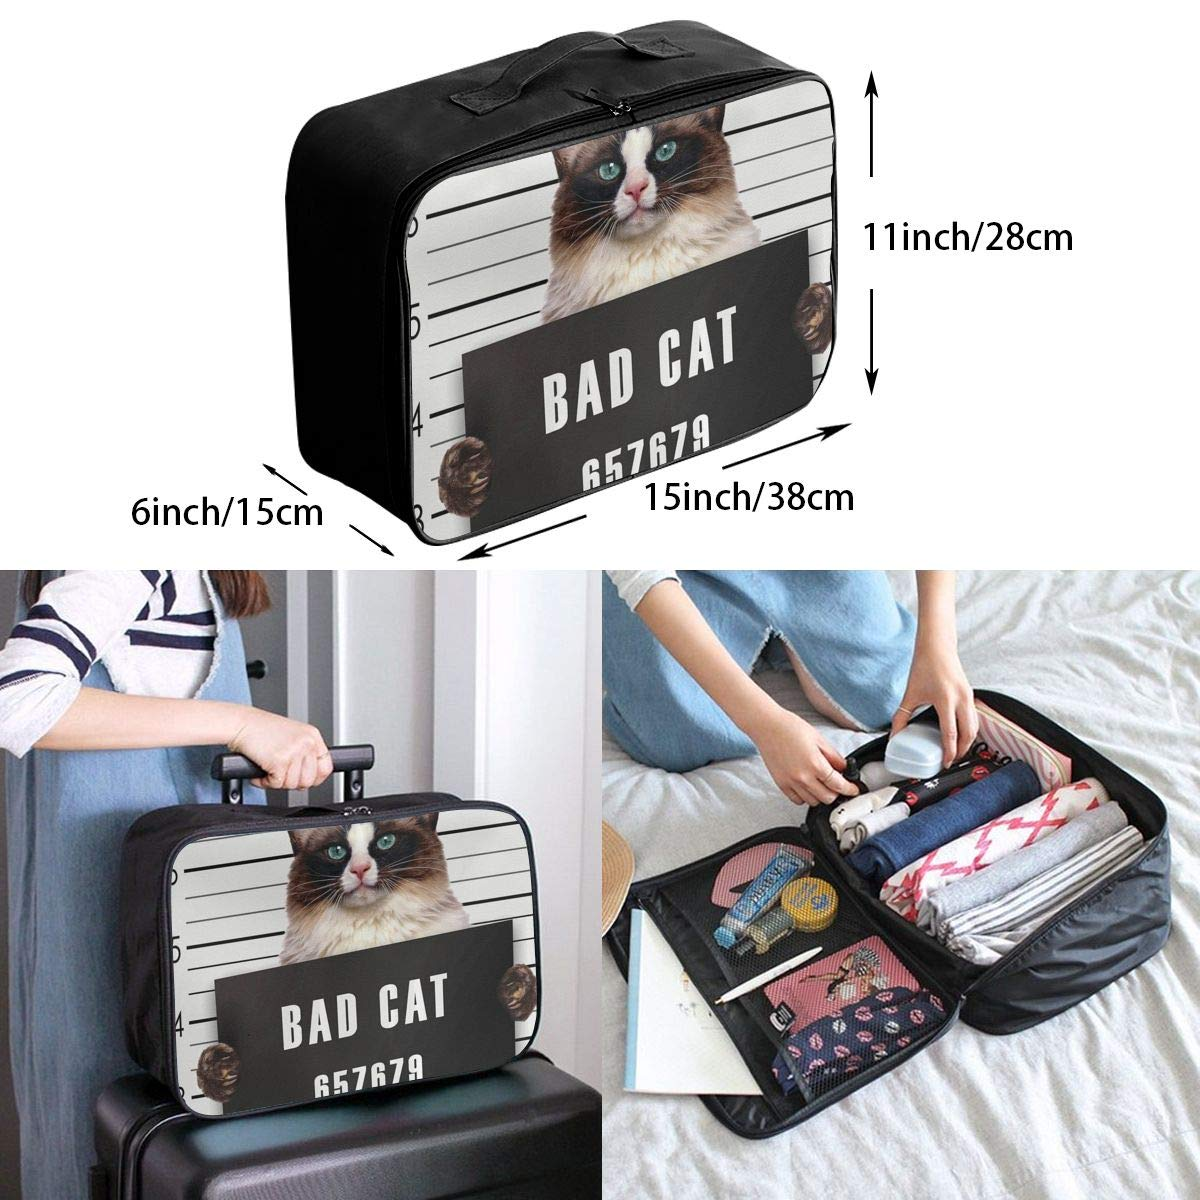 Funny Bad Grumpy Cat Travel Lightweight Waterproof Folding Storage Portable Luggage Duffle Tote Bag Large Capacity In Trolley Handle Bags 6x11x15 Inch